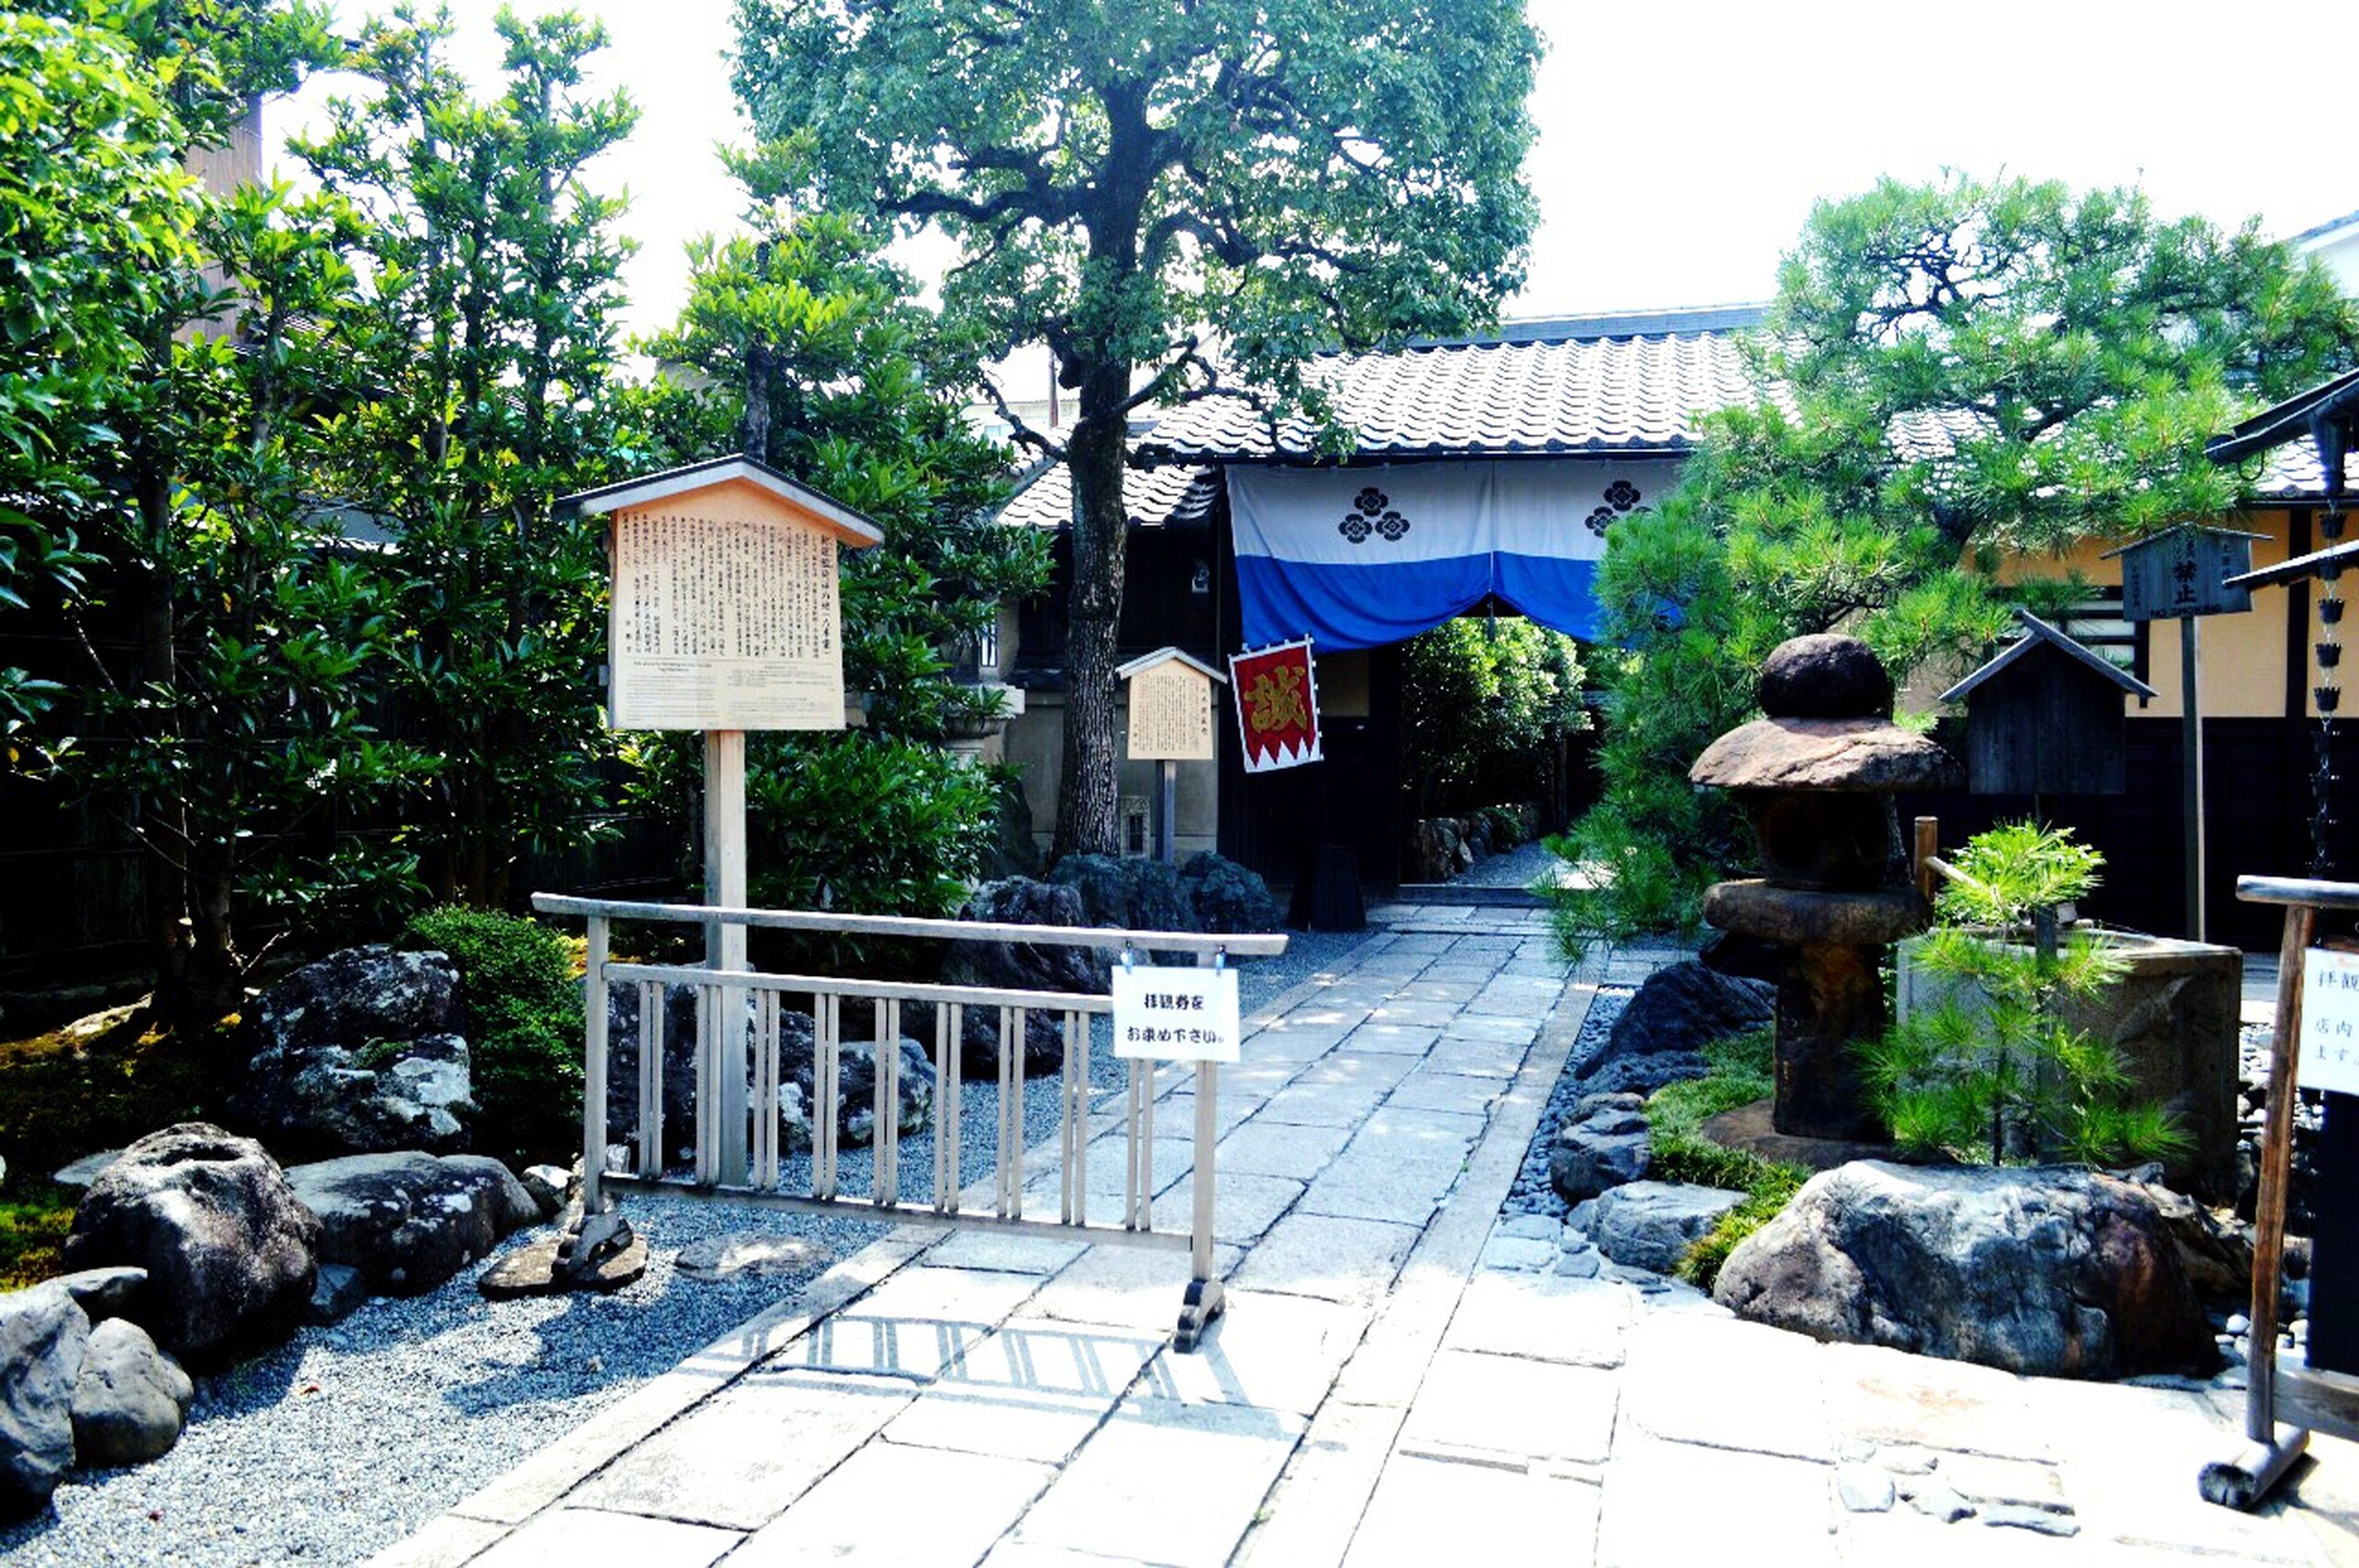 Architecture Building Exterior Built Structure Tree Outdoors Day No People Nature Sky 京都 新選組 屯所 八木邸 Kyoto